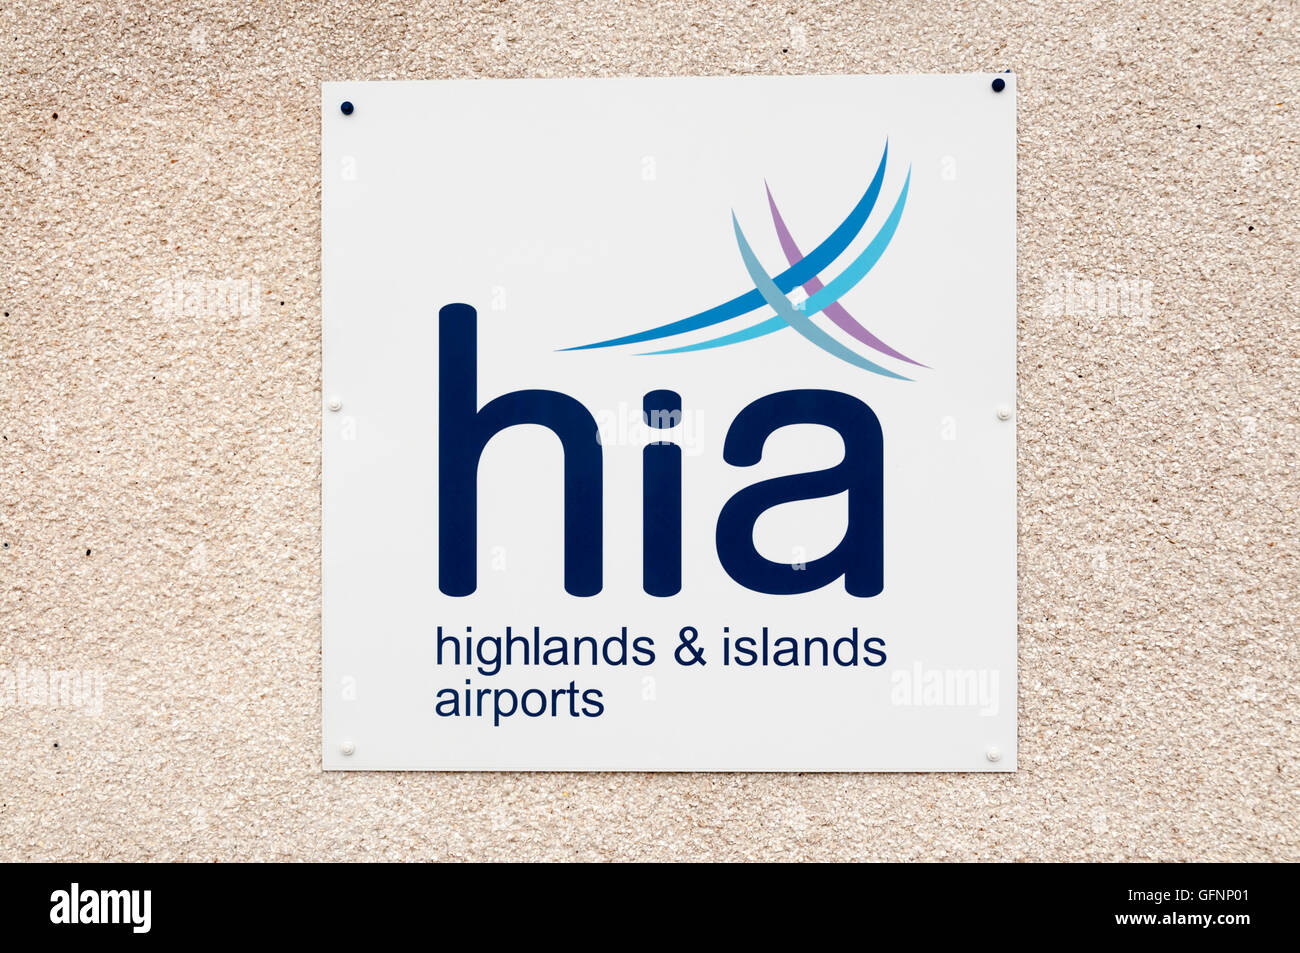 Sign for Highlands & Islands Airports at Barra Airport in the Outer Hebrides. - Stock Image